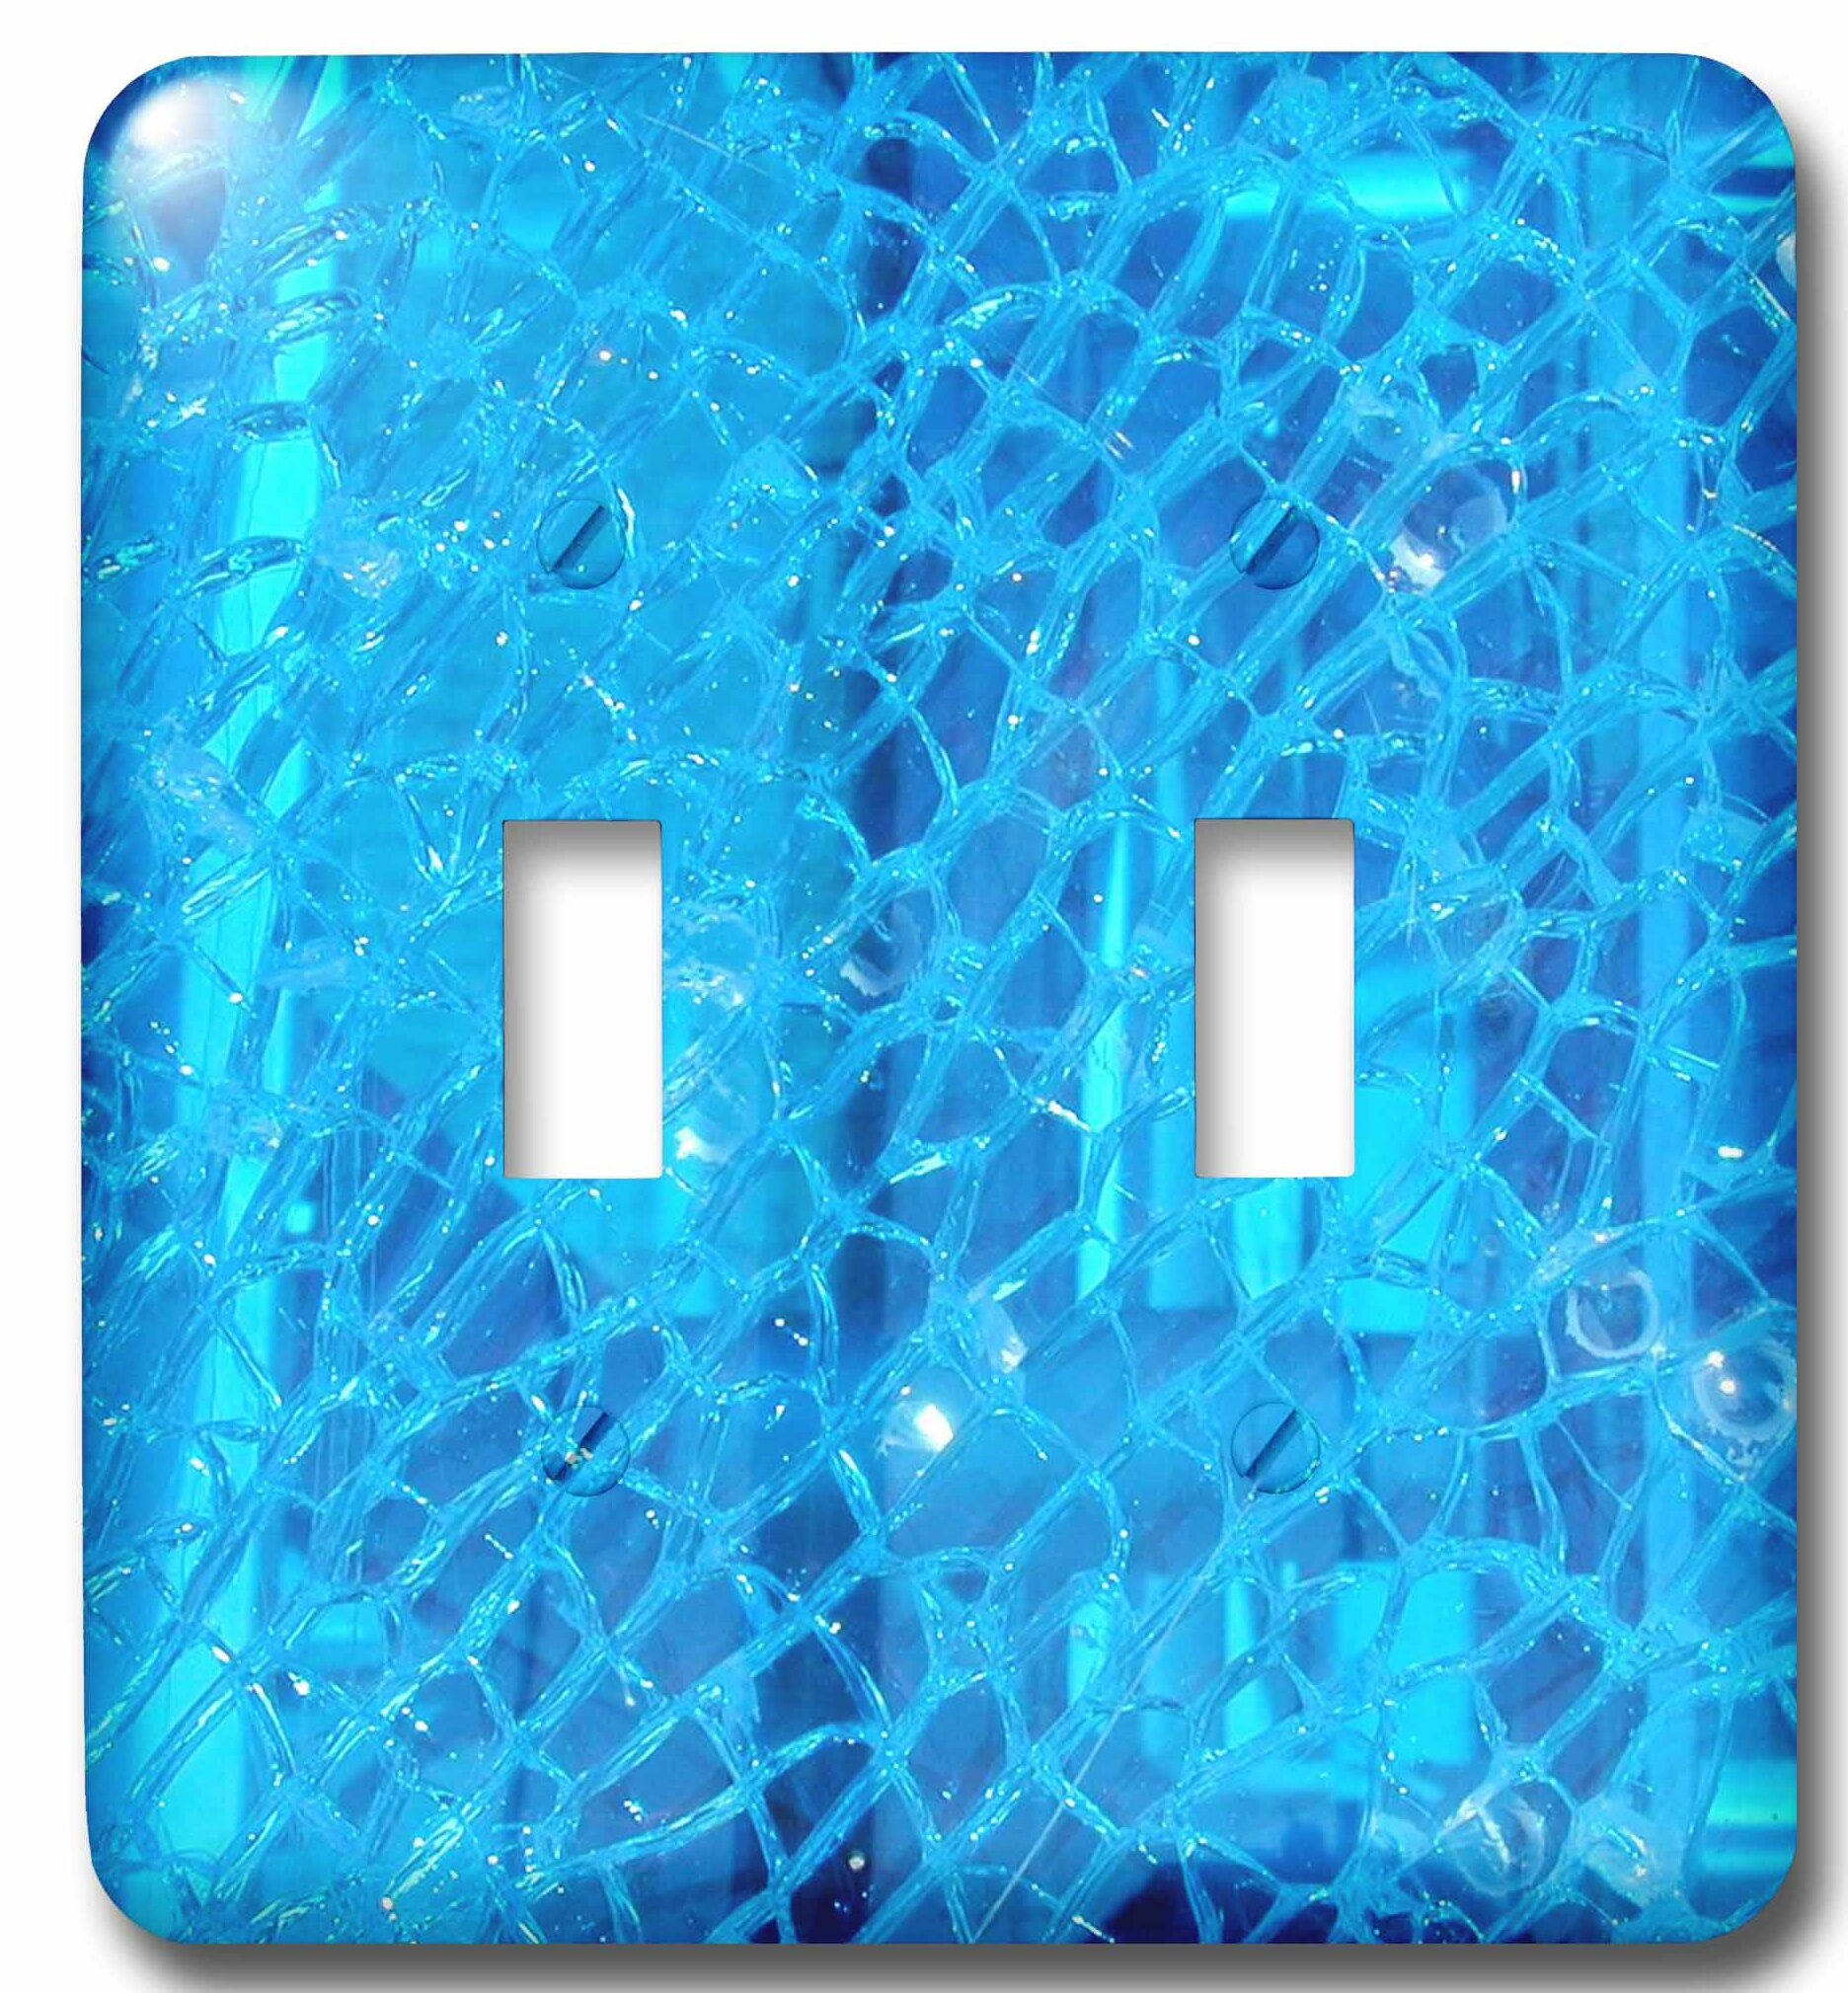 3drose Cracked Glass 2 Gang Toggle Light Switch Wall Plate Wayfair